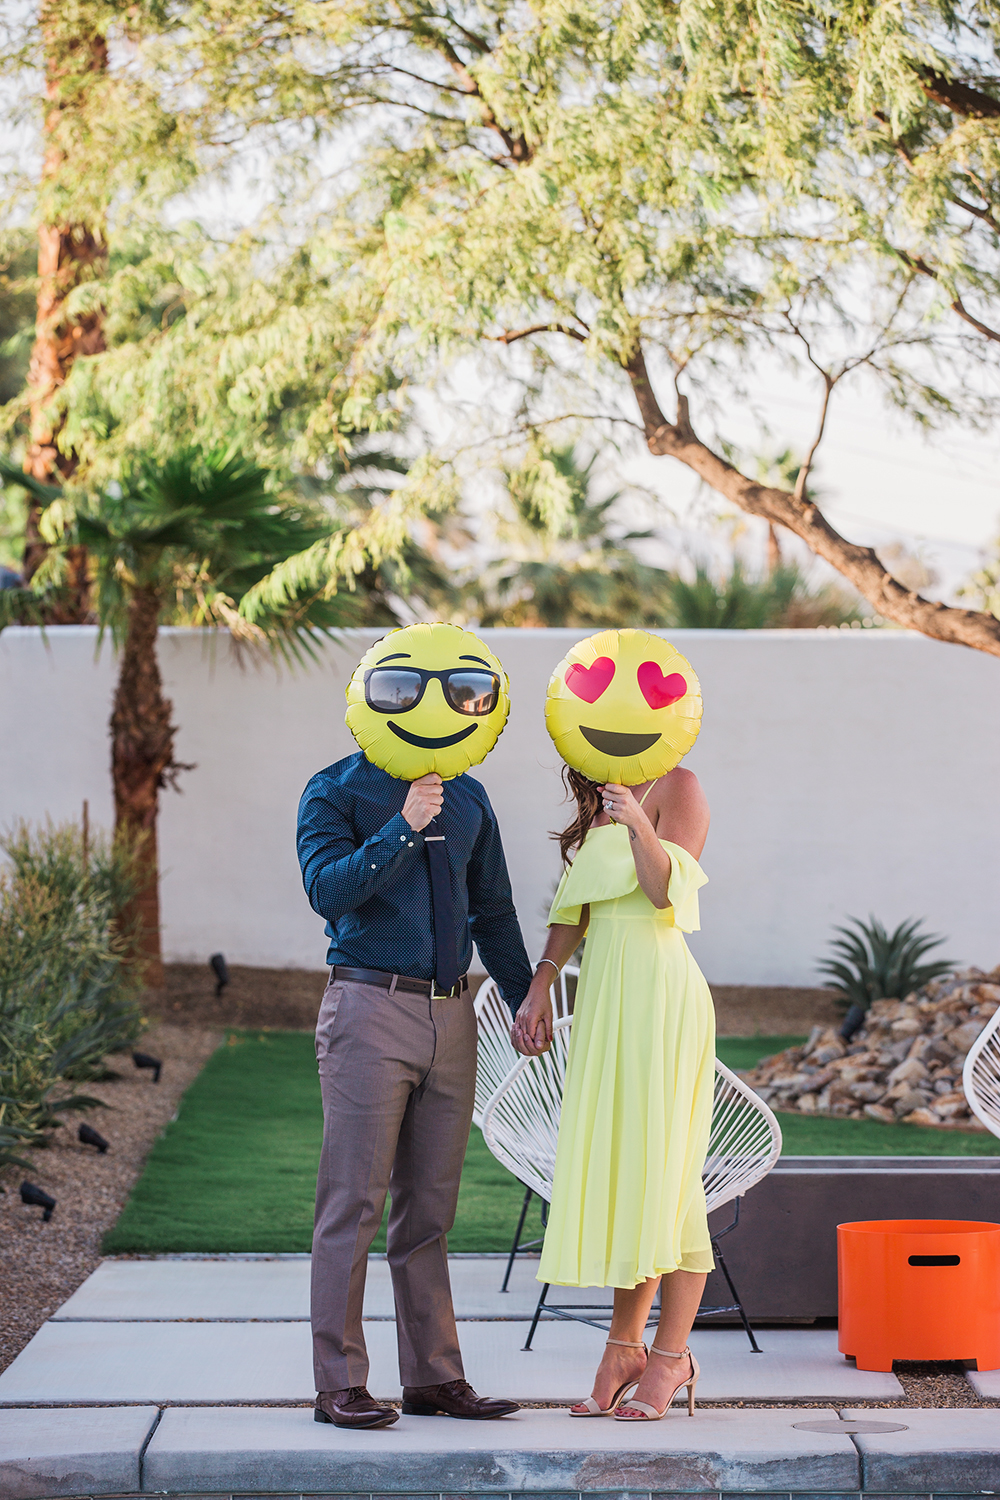 casey-brodley-wedding-photographer-emoji.jpg